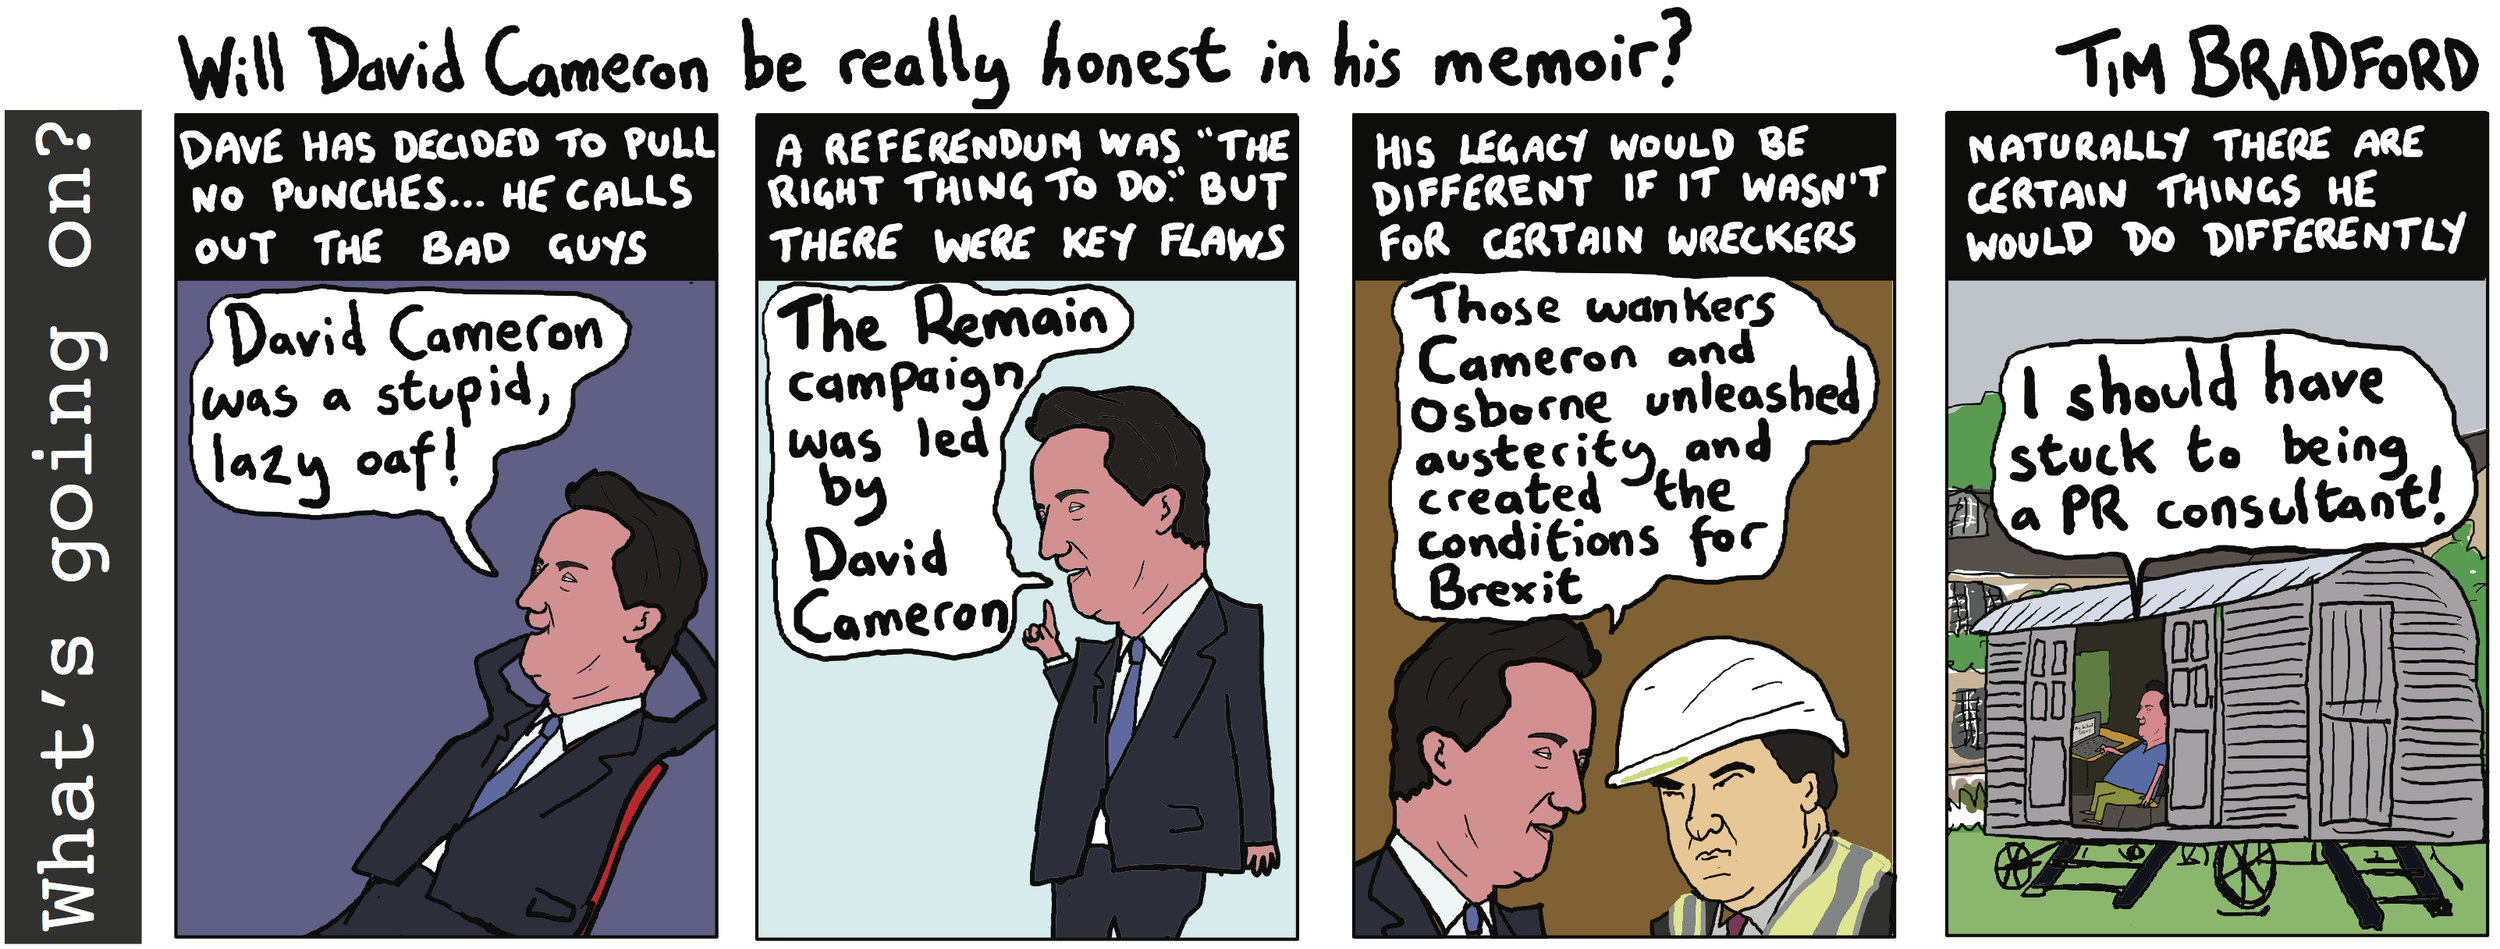 Will David Cameron be really honest in his memoir? - 07/08/18